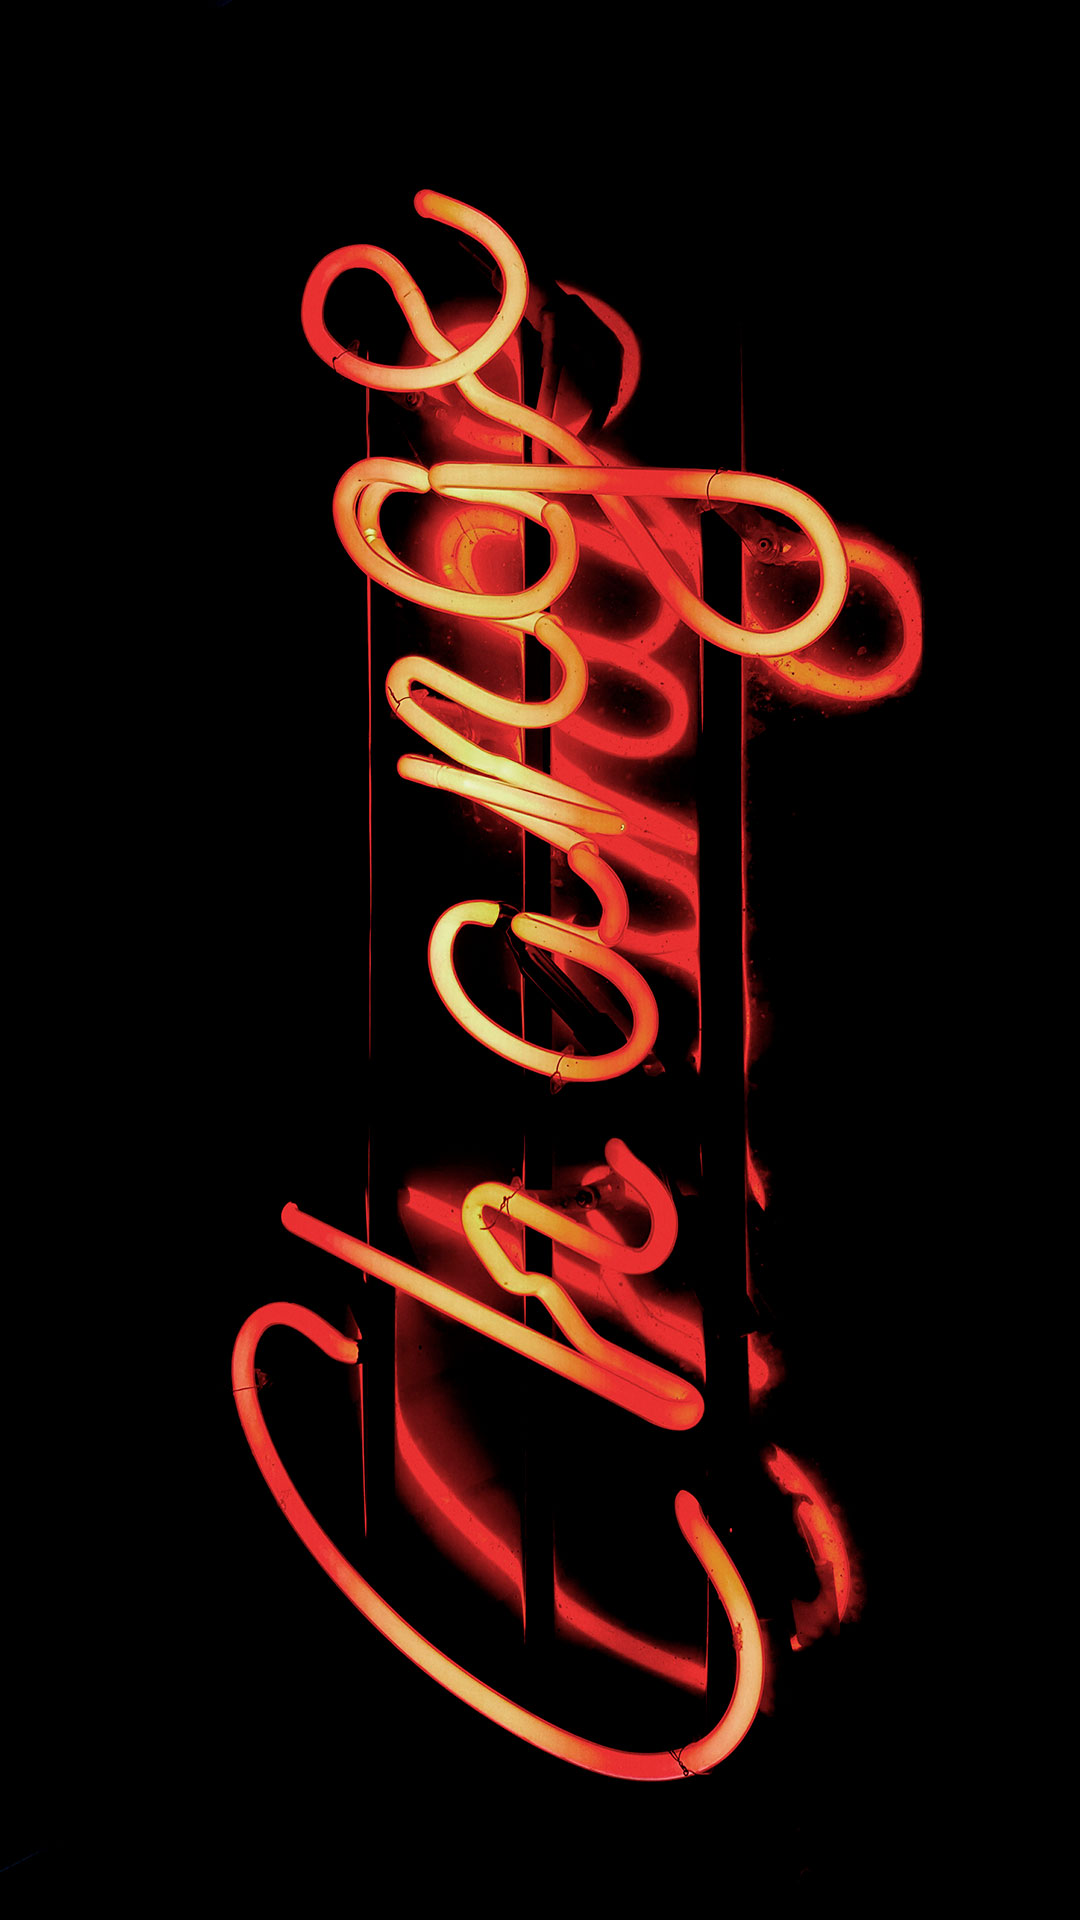 iPhone wallpaper neon sign change Neon Sign